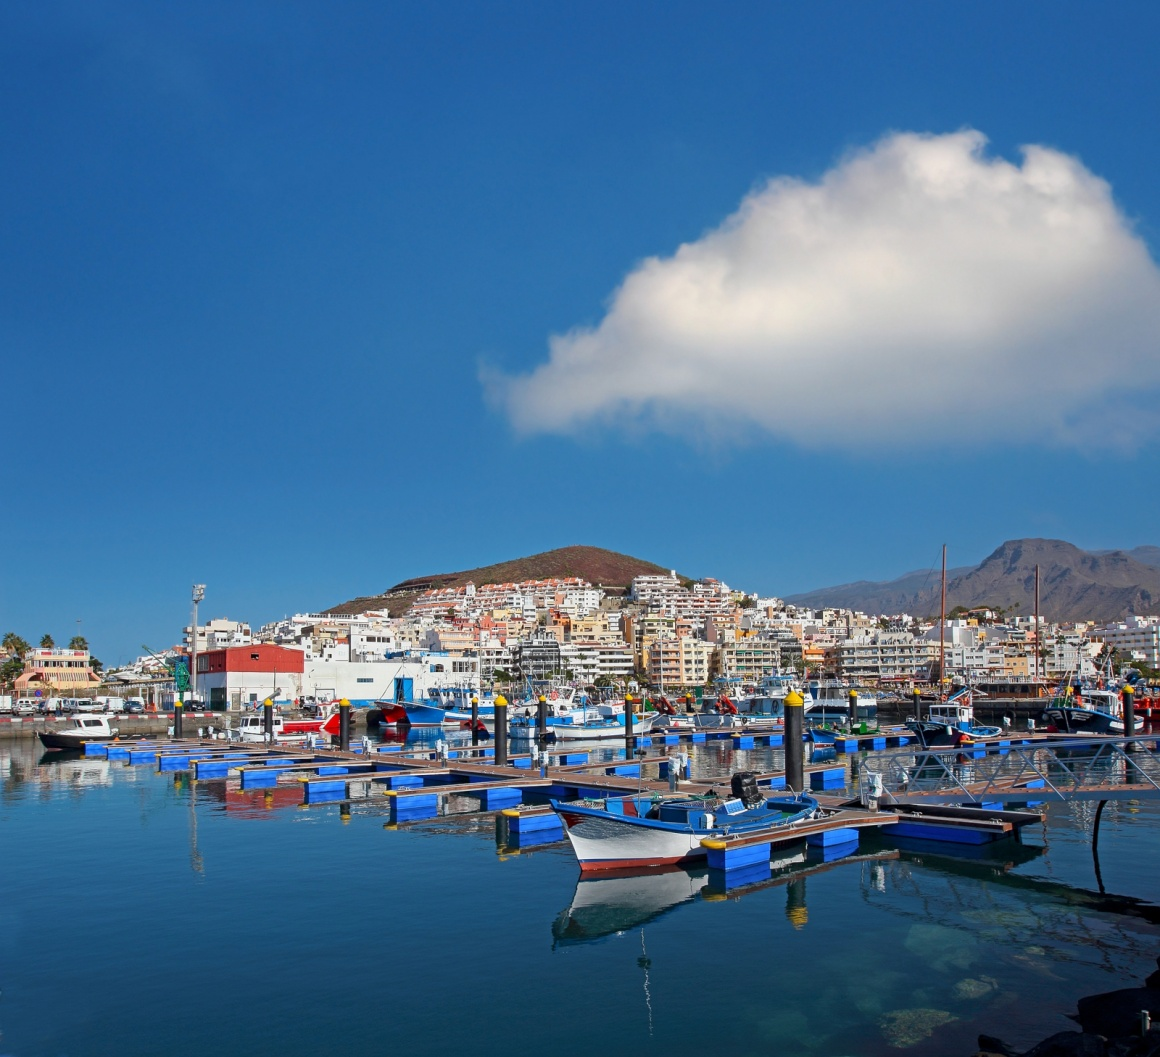 'Harbor in Los Cristianos resort town in Tenerife, Canary Islands, Spain' - Tenerife